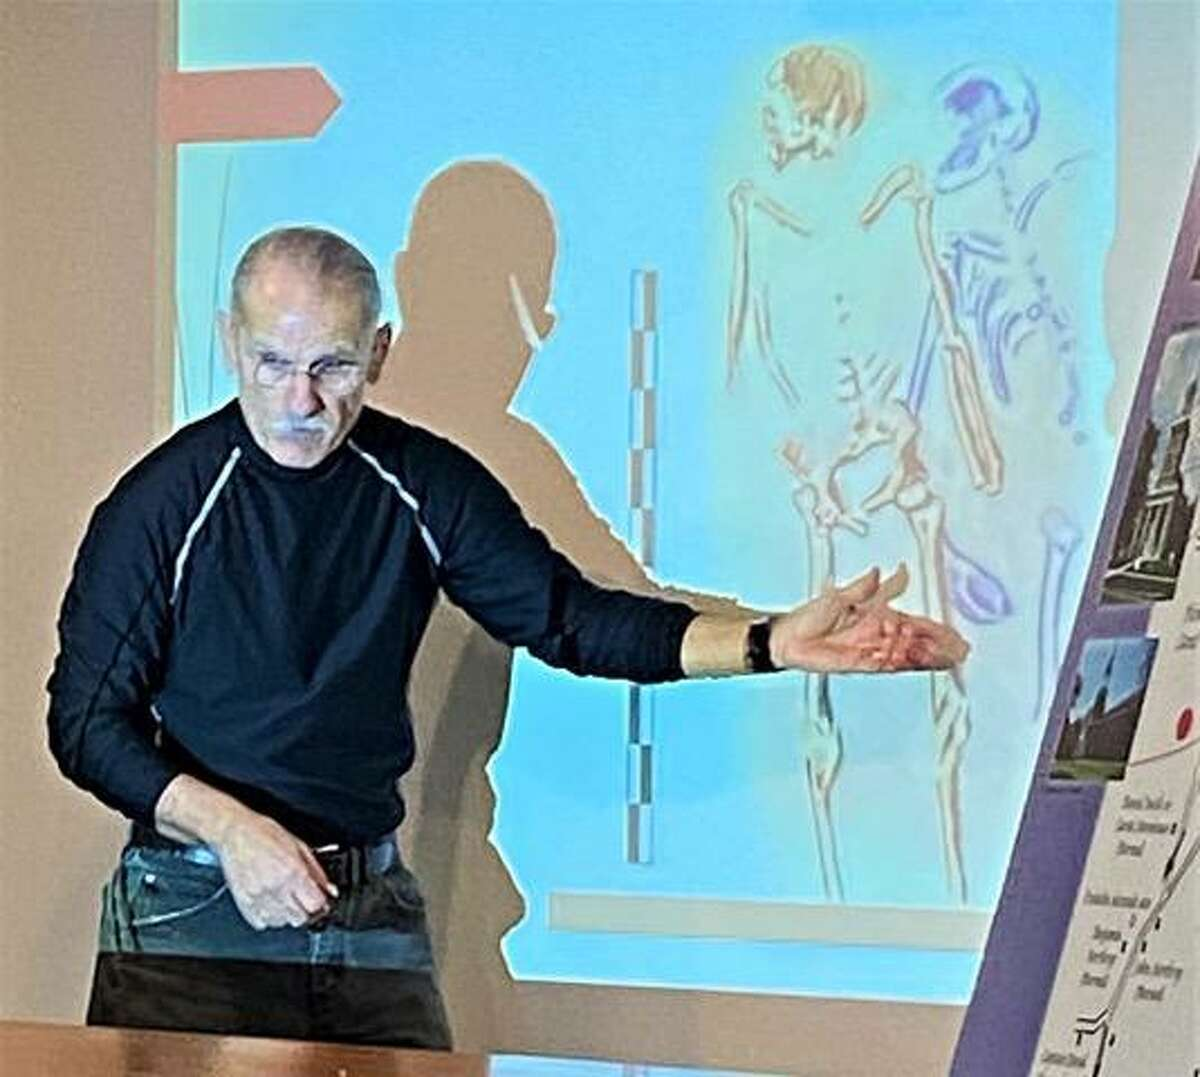 Nicholas Bellantoni, emeritus state archaeologist, discussed the skeletons linked to the Battle of Ridgefield at press conference last December.